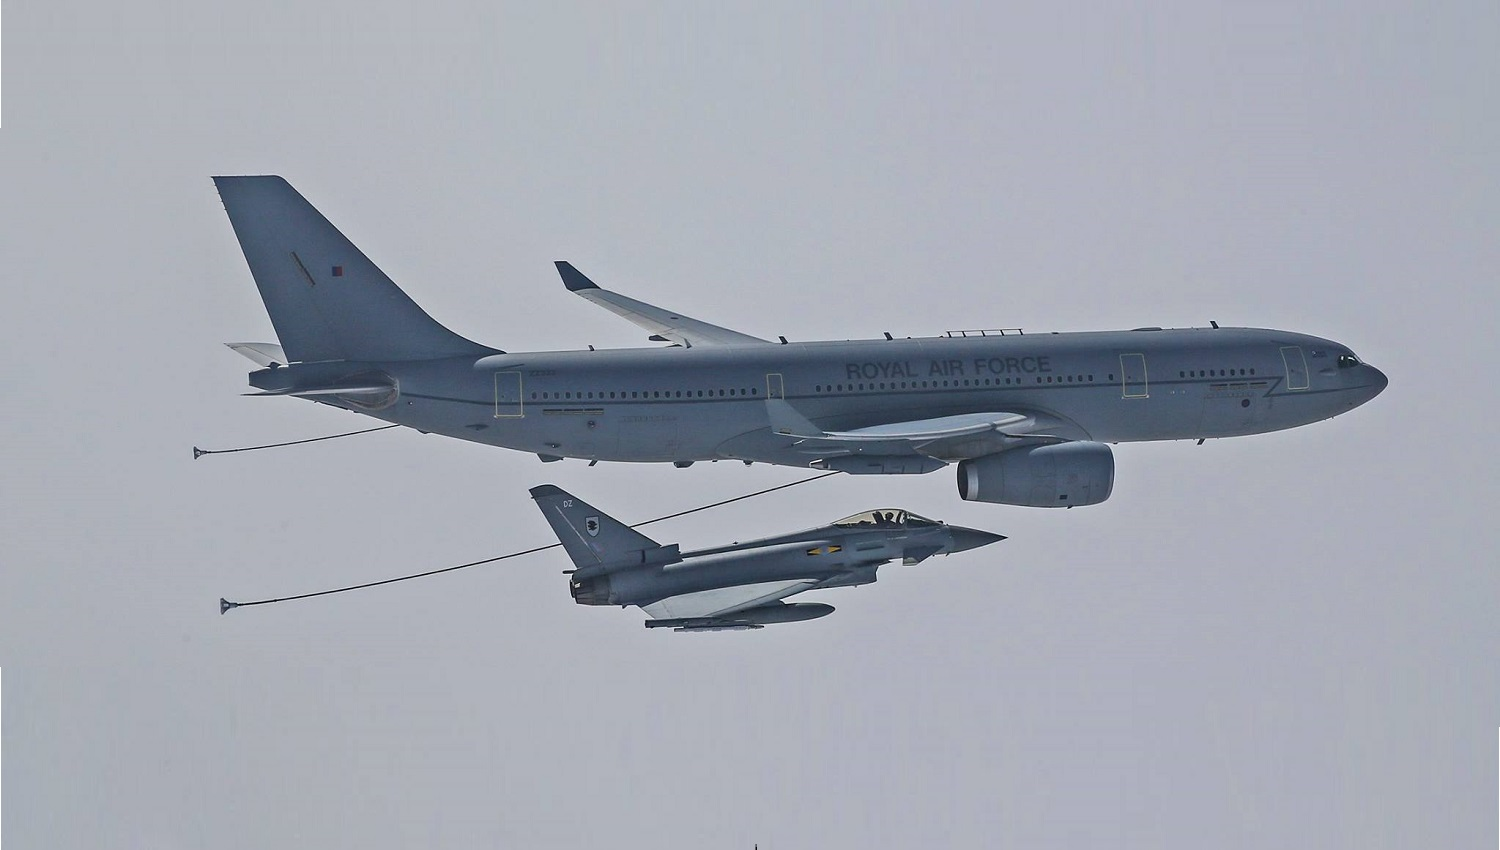 Royal Air Force Eurofighters and Voyager Take Part In First South East Asia Exercise